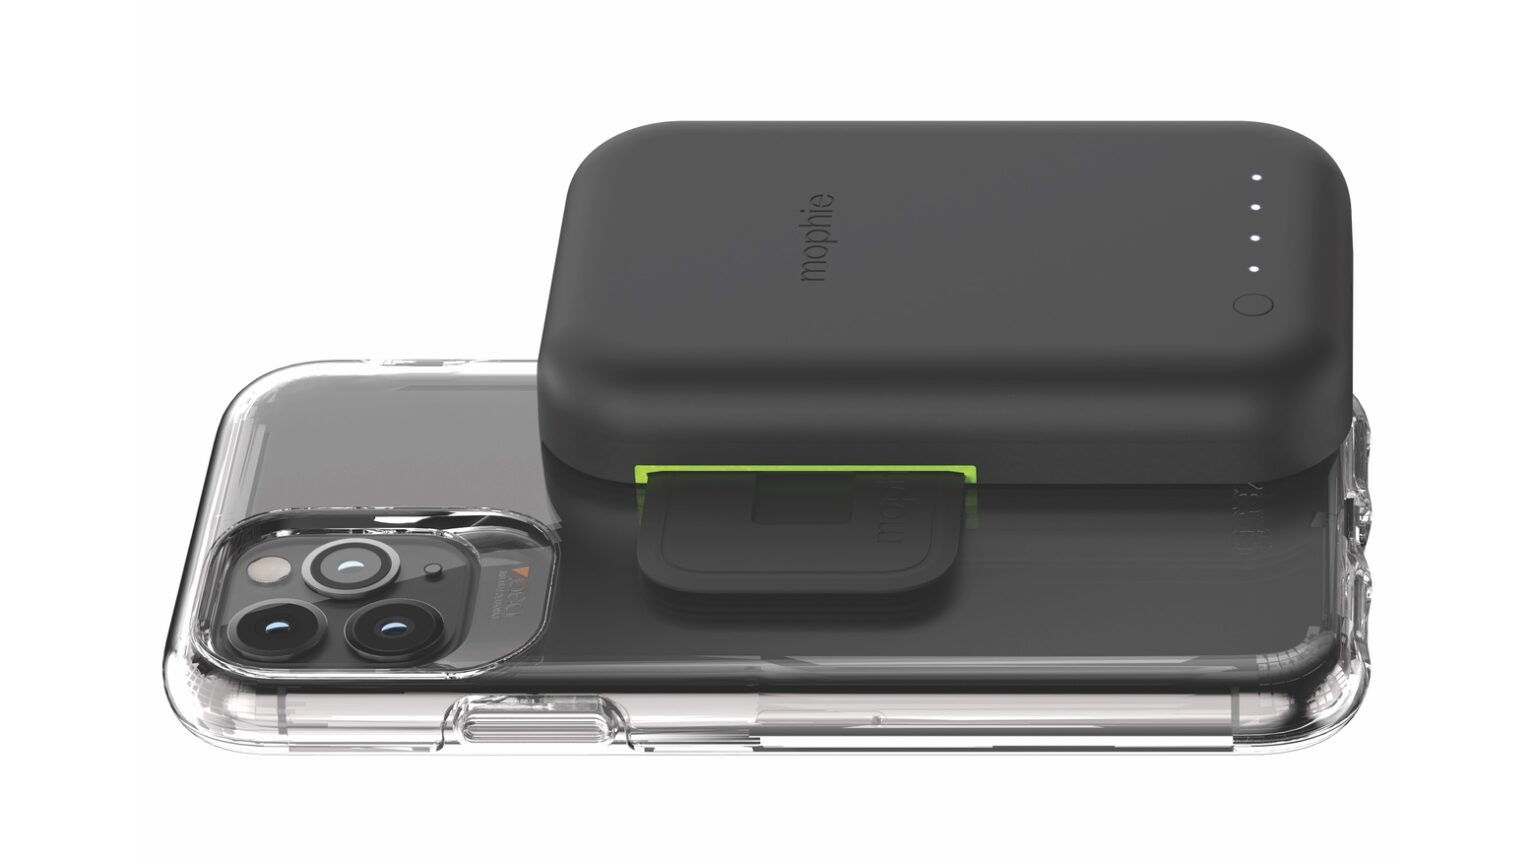 The Mophie Juice Pack Connect